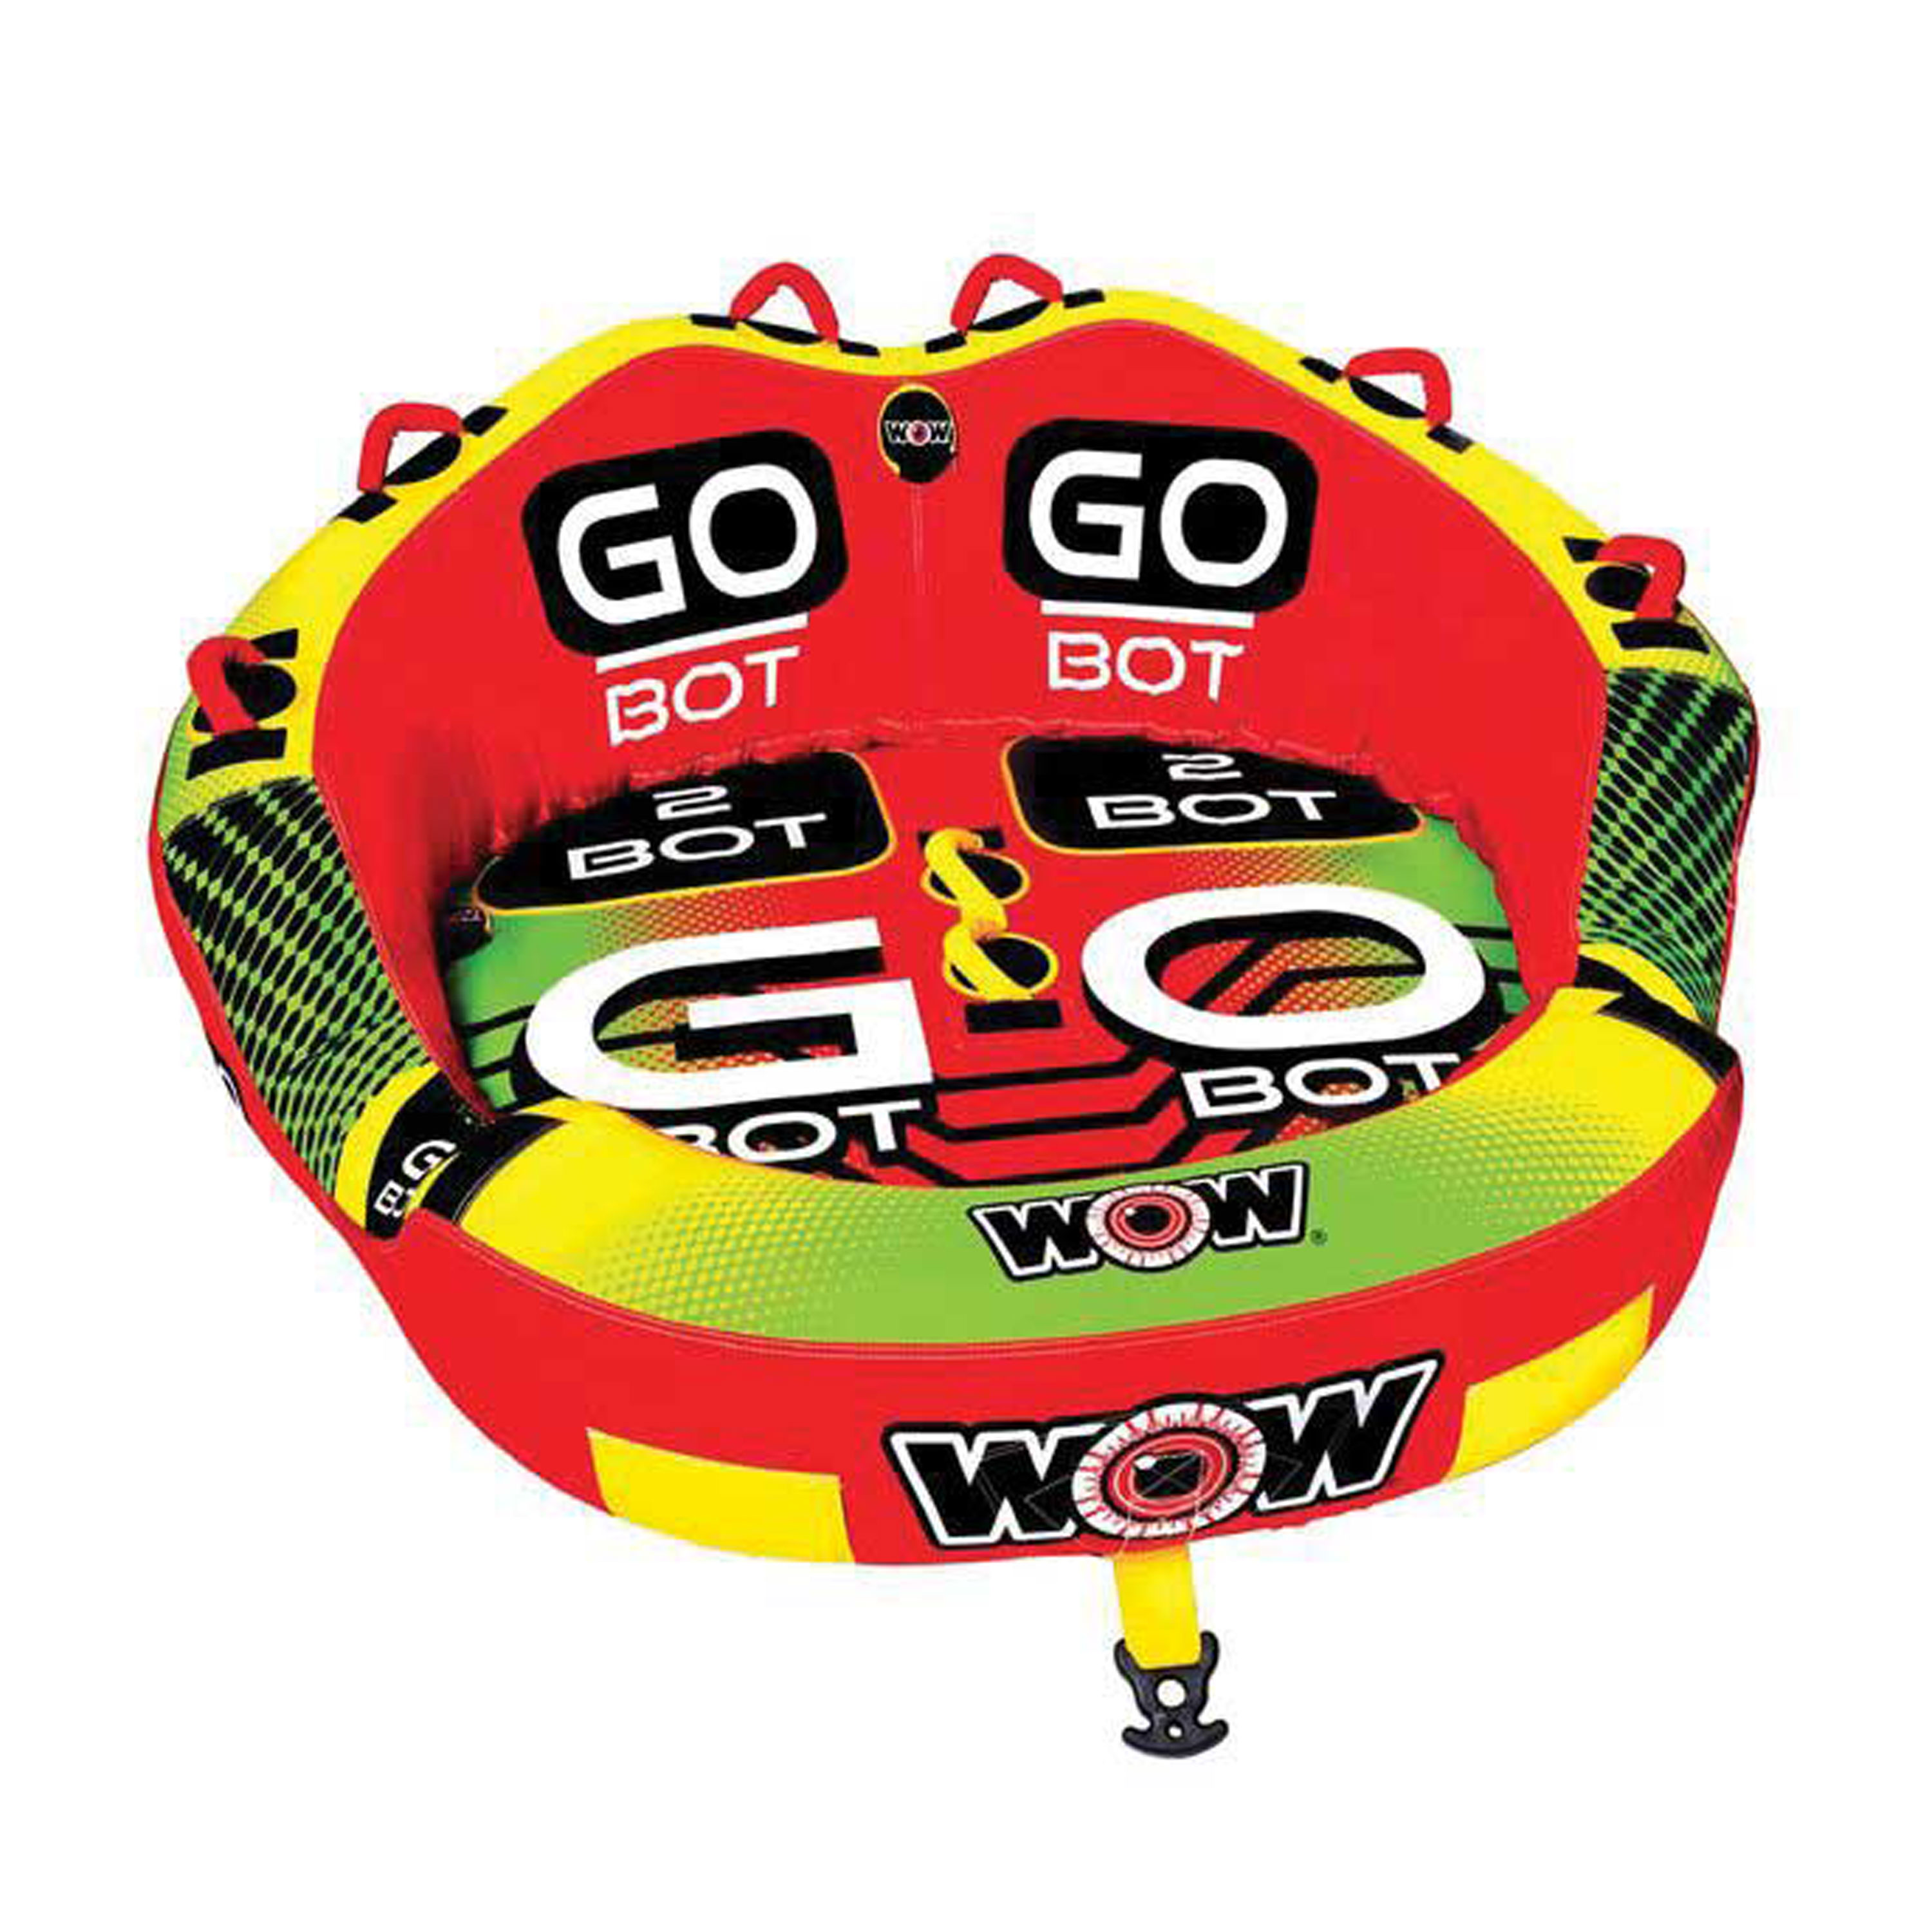 Wow Sports 18-1040 Towable Go Bot 2 Person